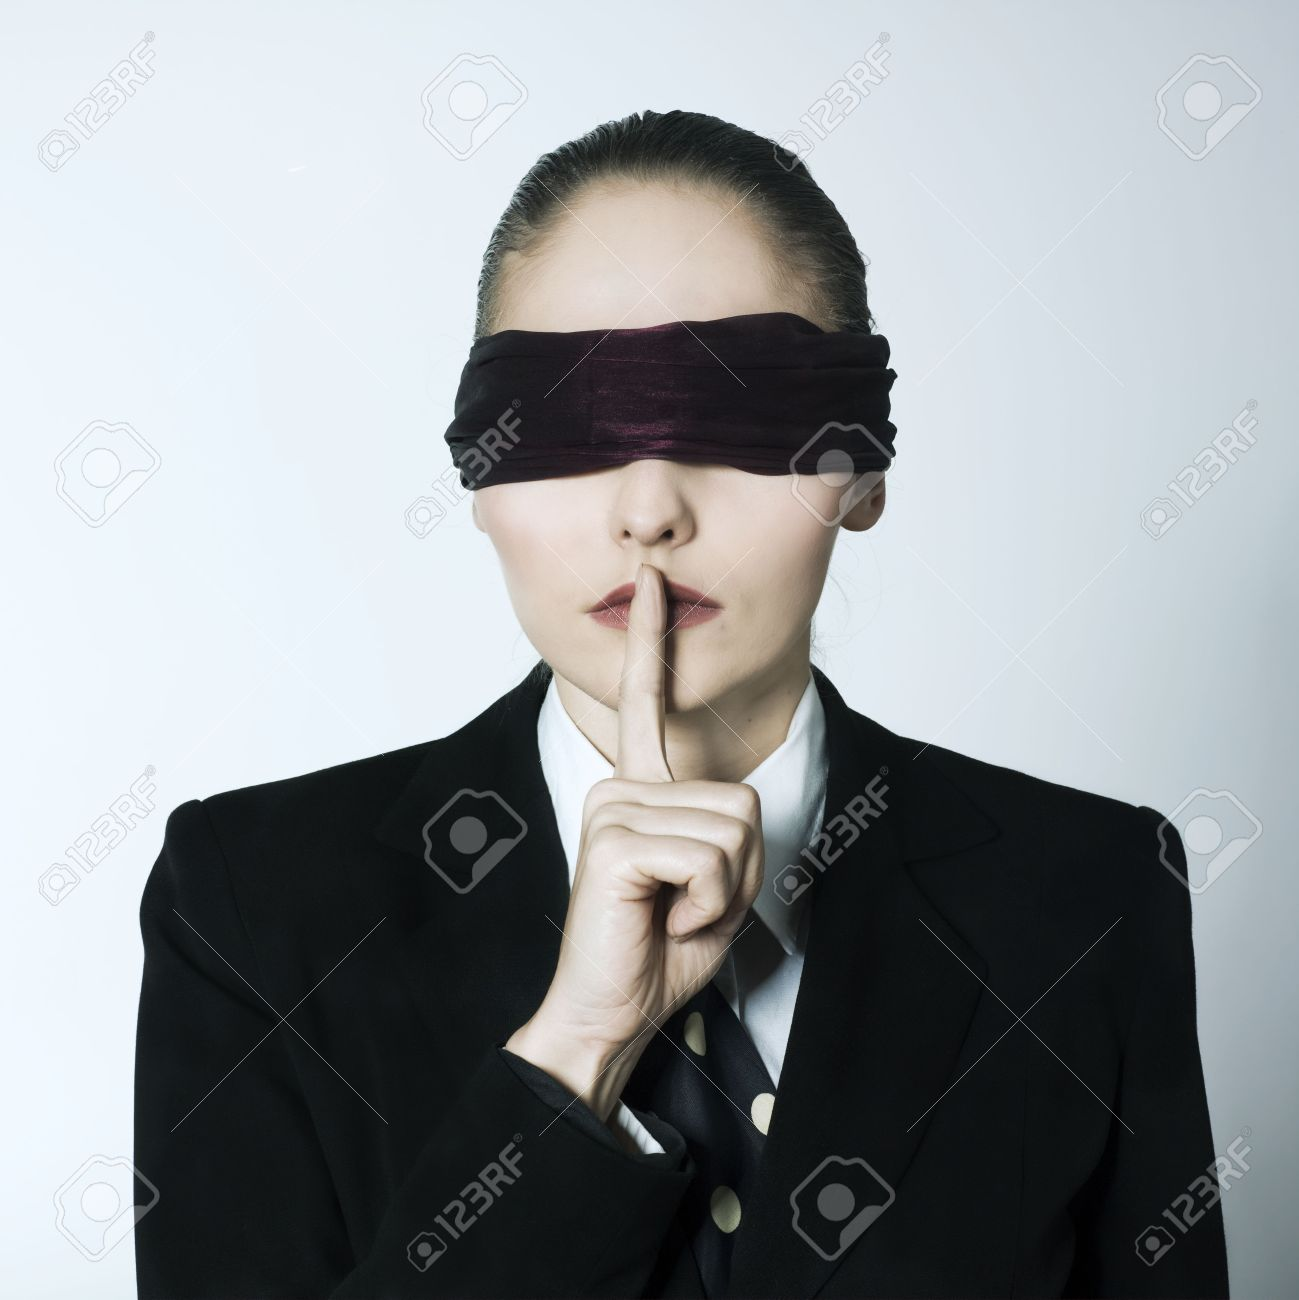 studio shot portrait of a beautiful young blindfold woman in a costume suit Stock Photo - 2966747